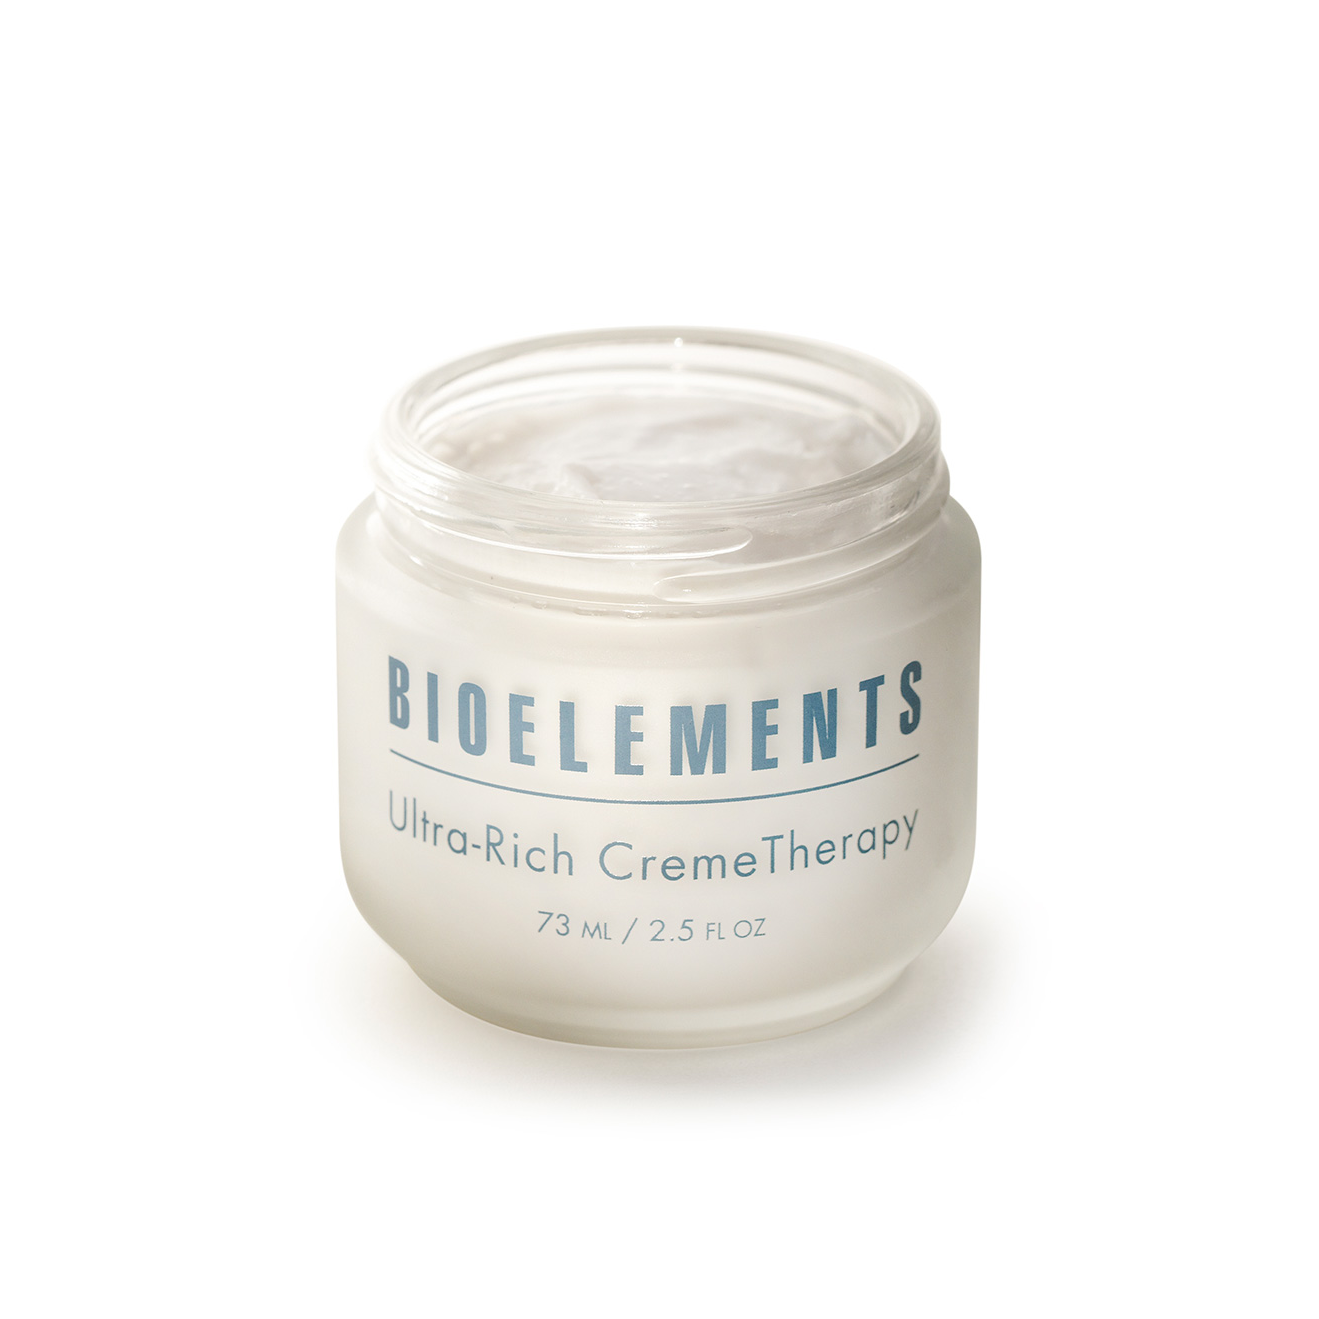 Bioelements Ultra-Rich CremeTherapy Facial Mask